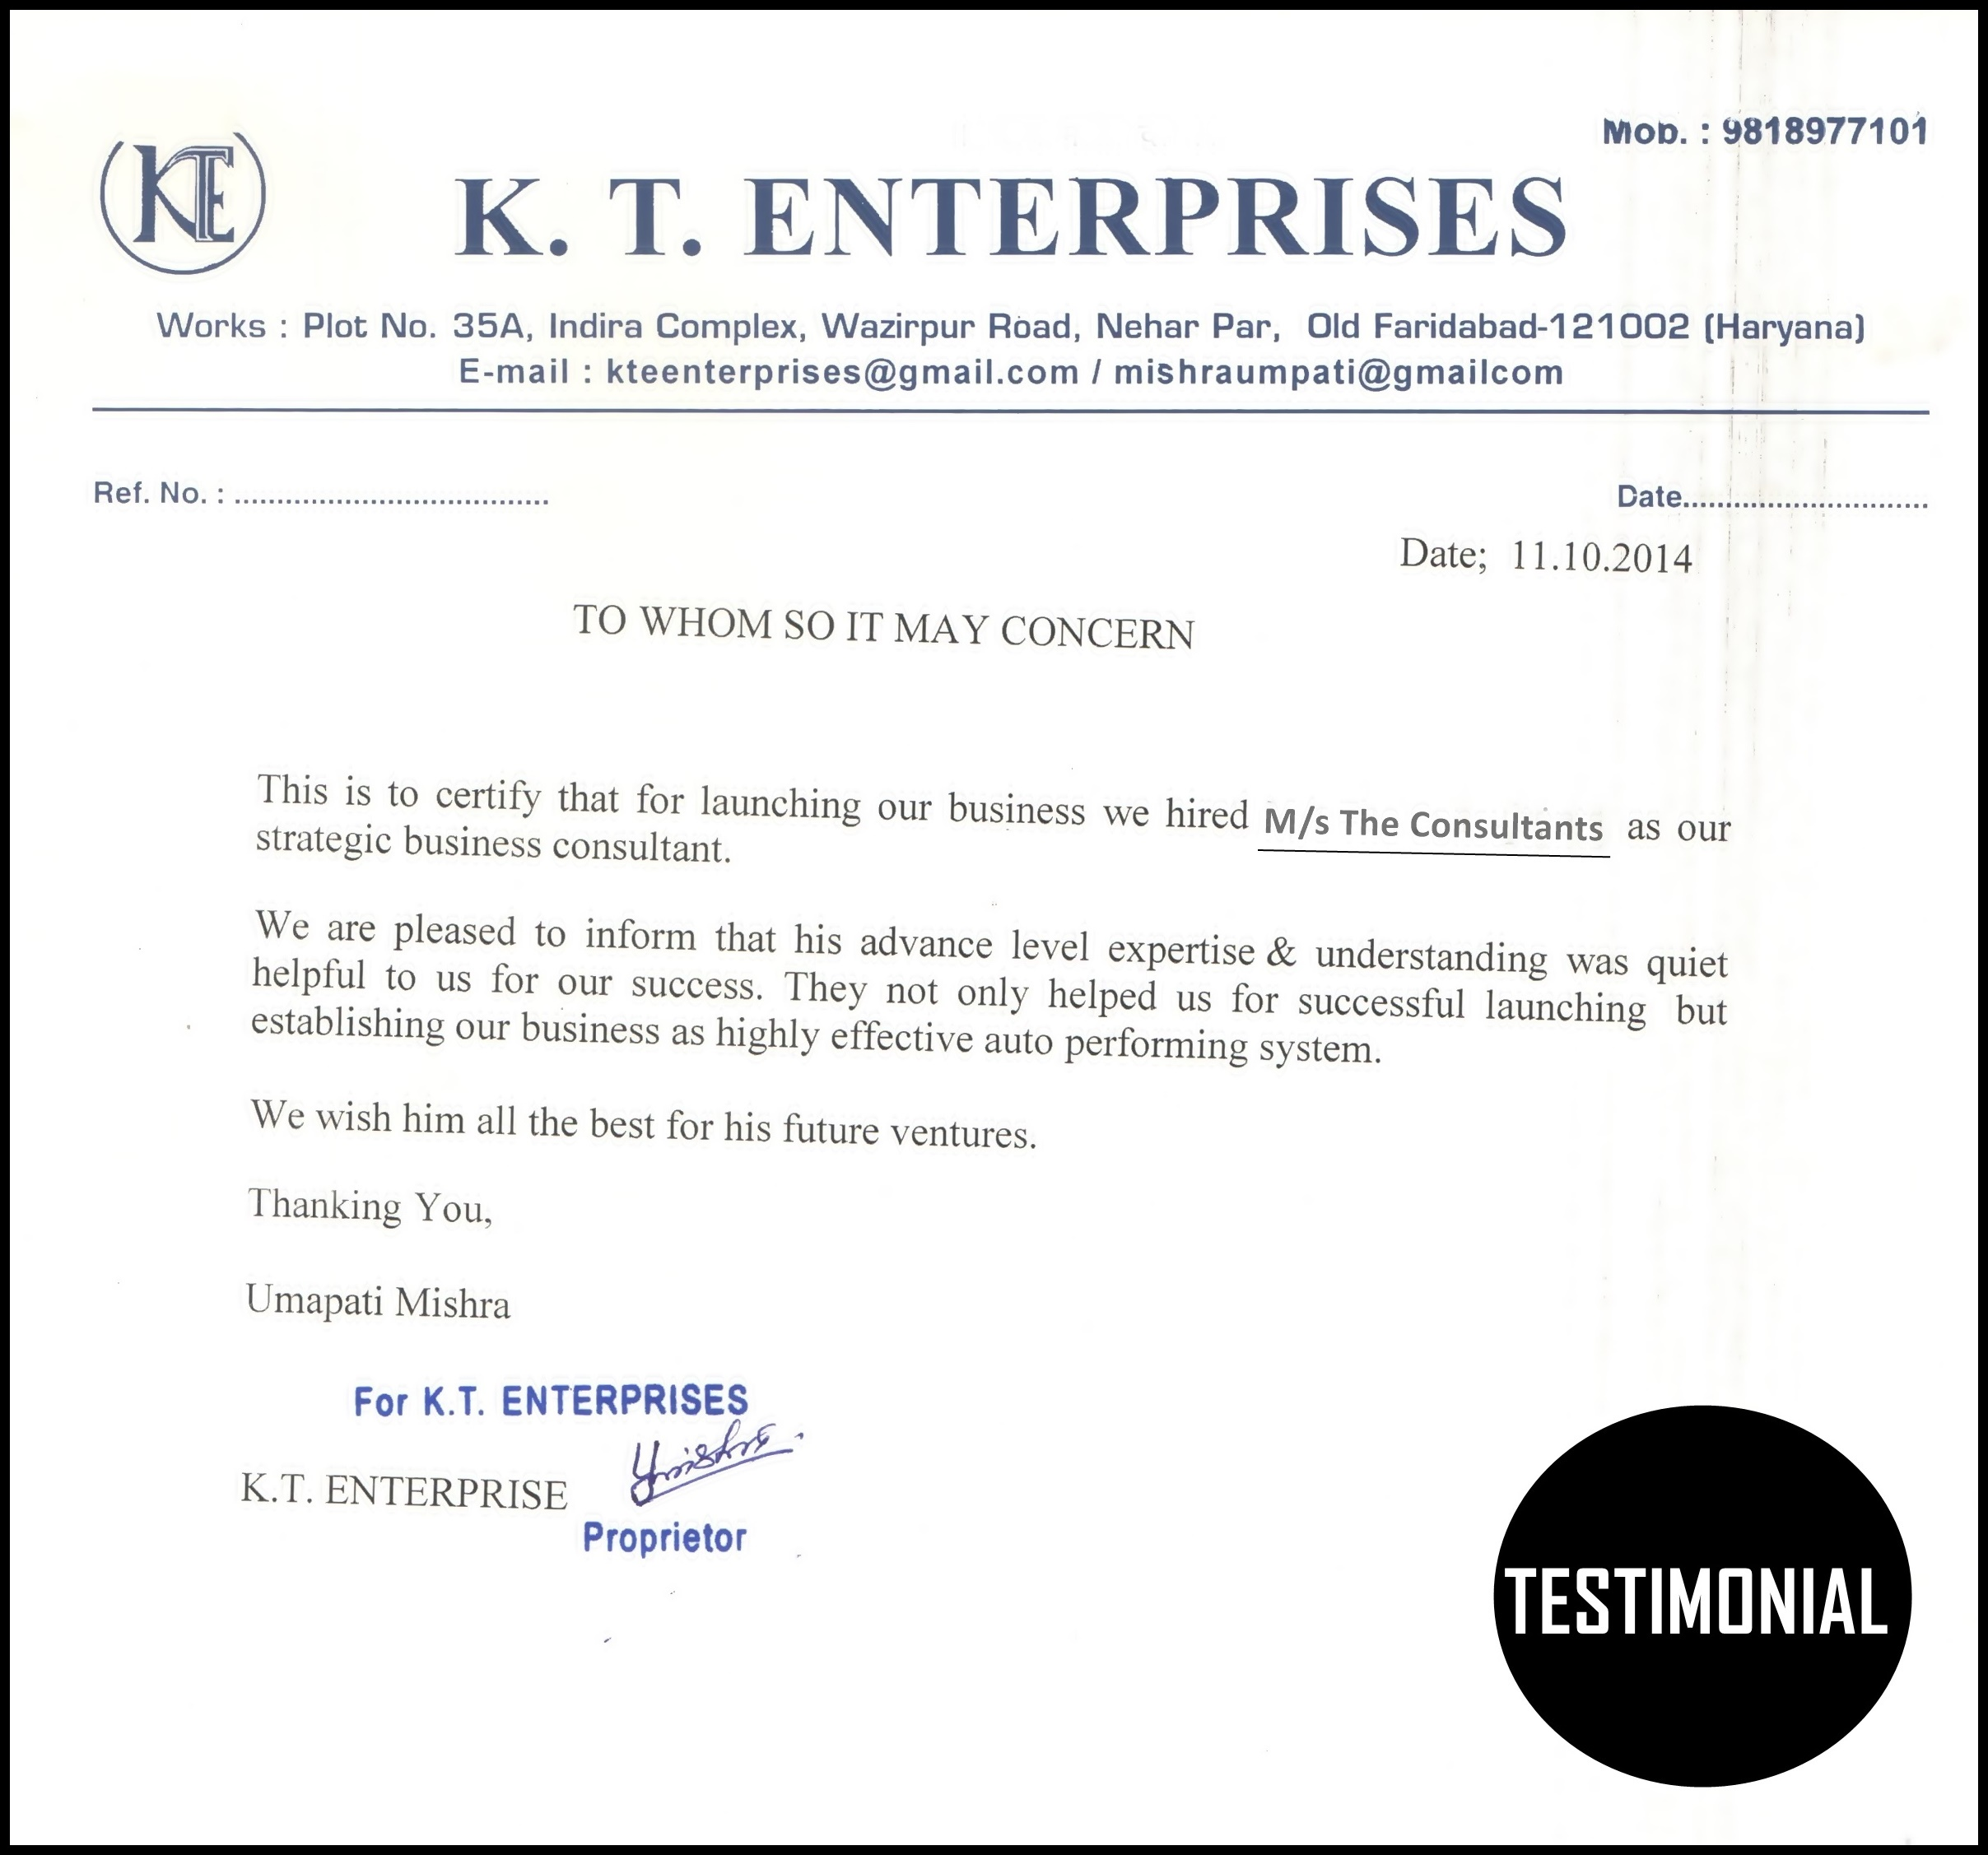 TESTIMONIAL THE CONSULTANTS